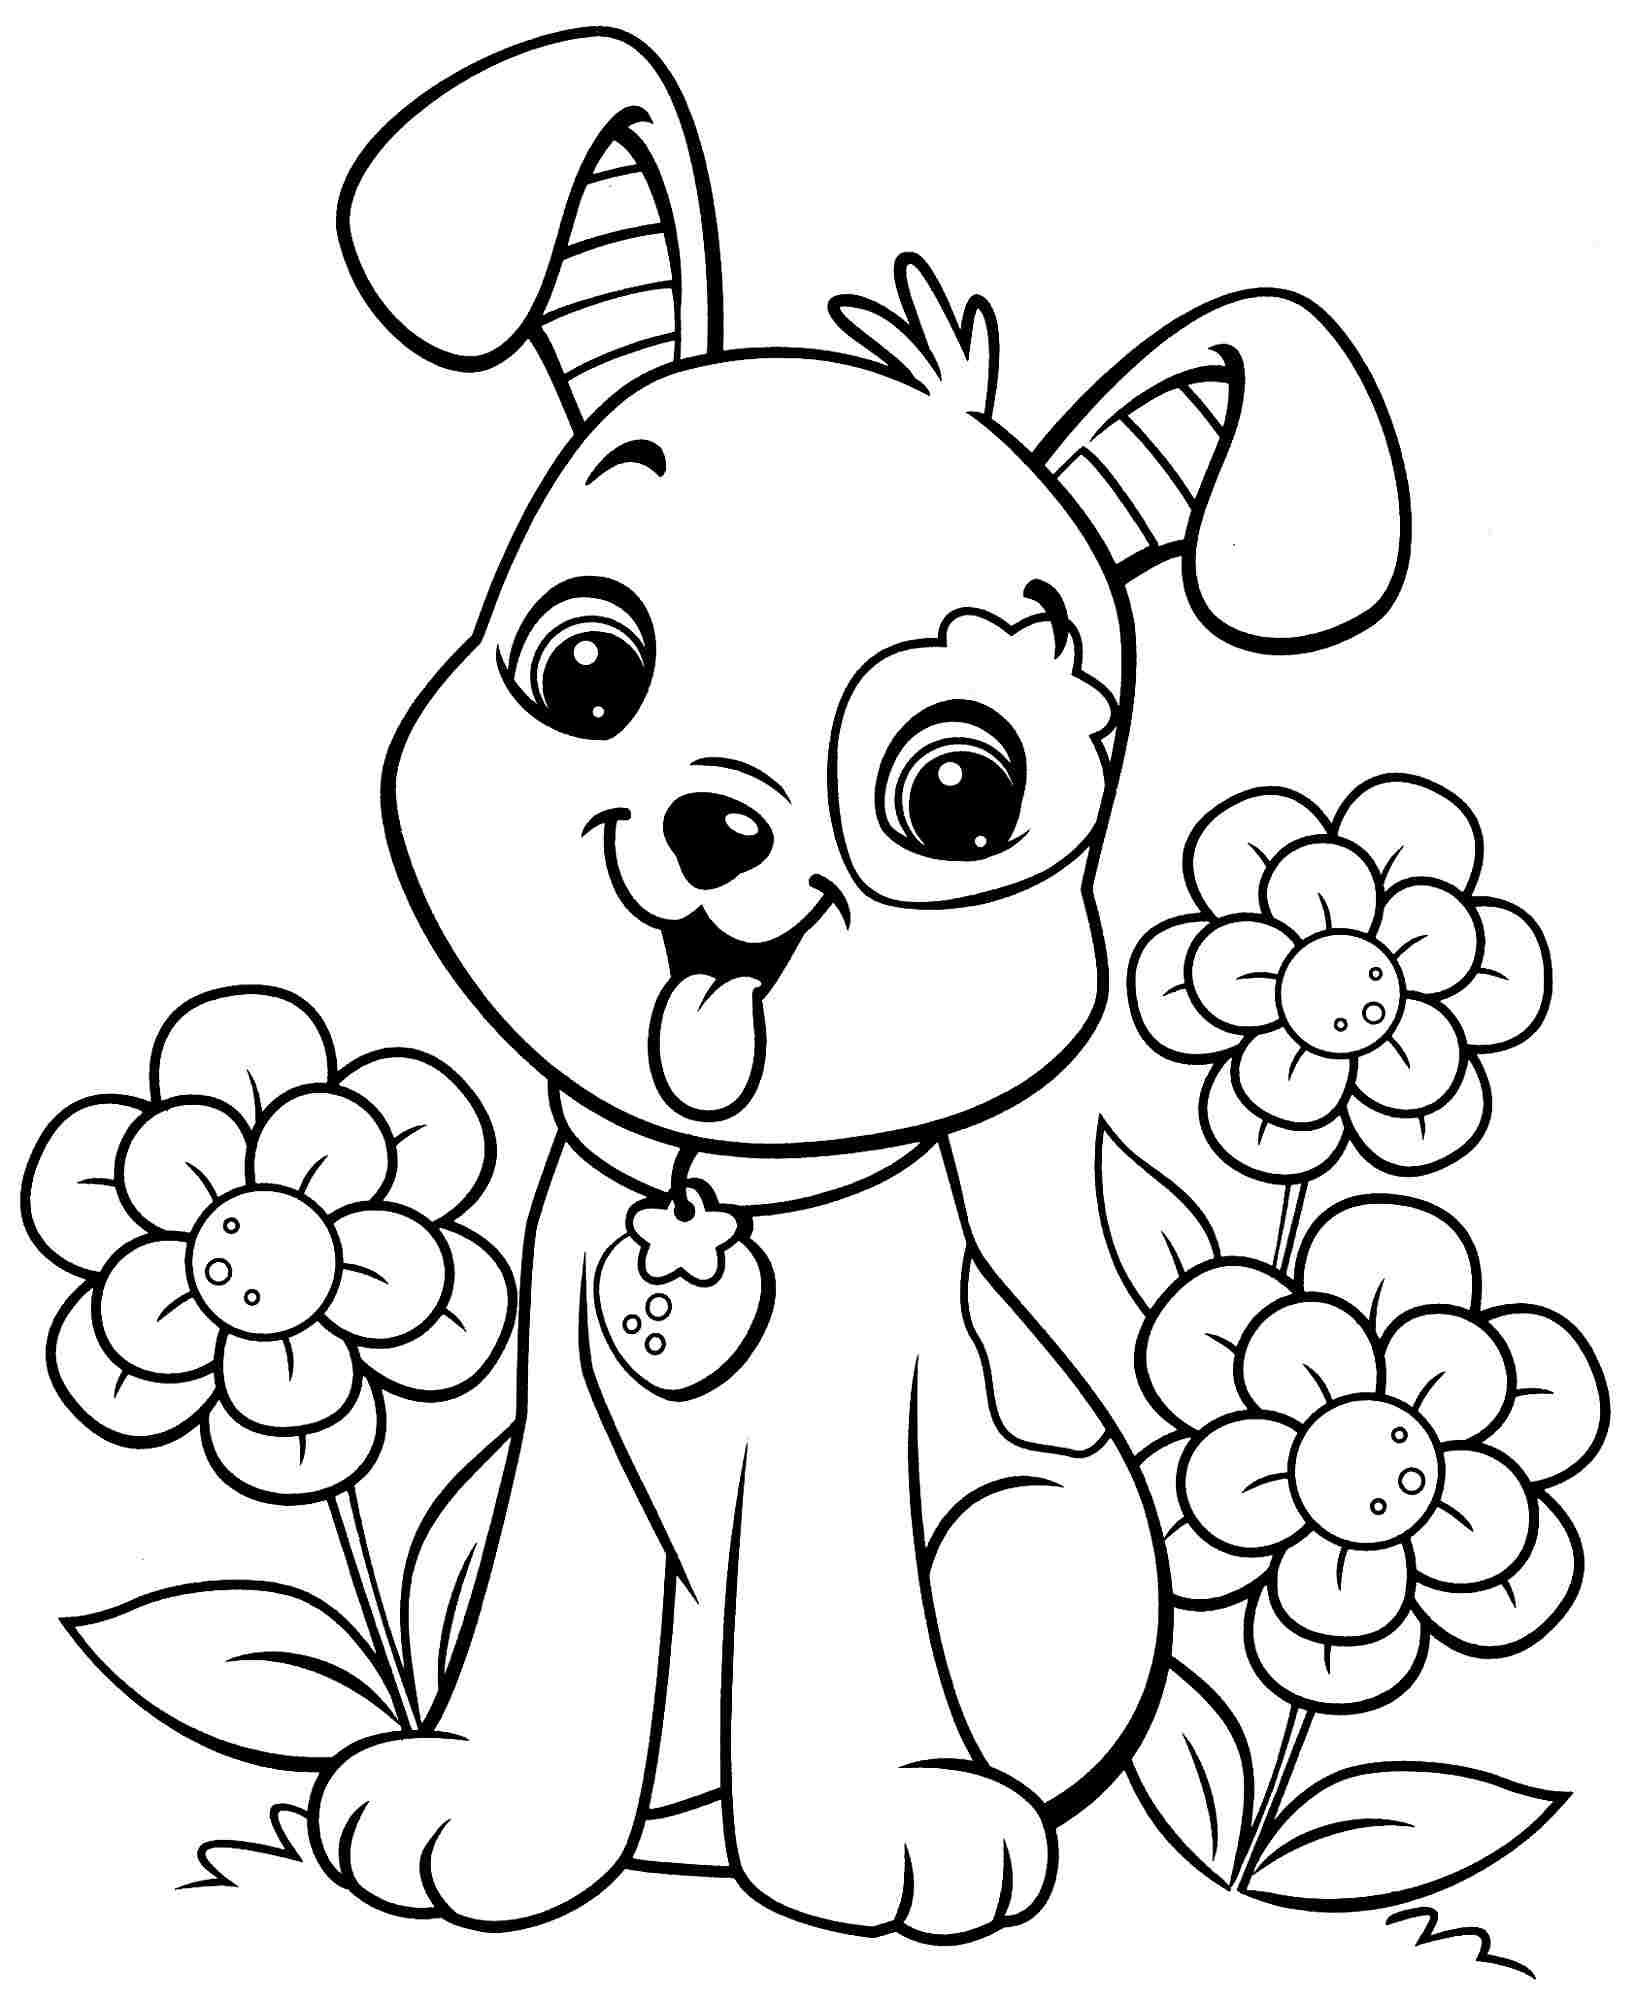 11+ Cute puppy colouring pages information